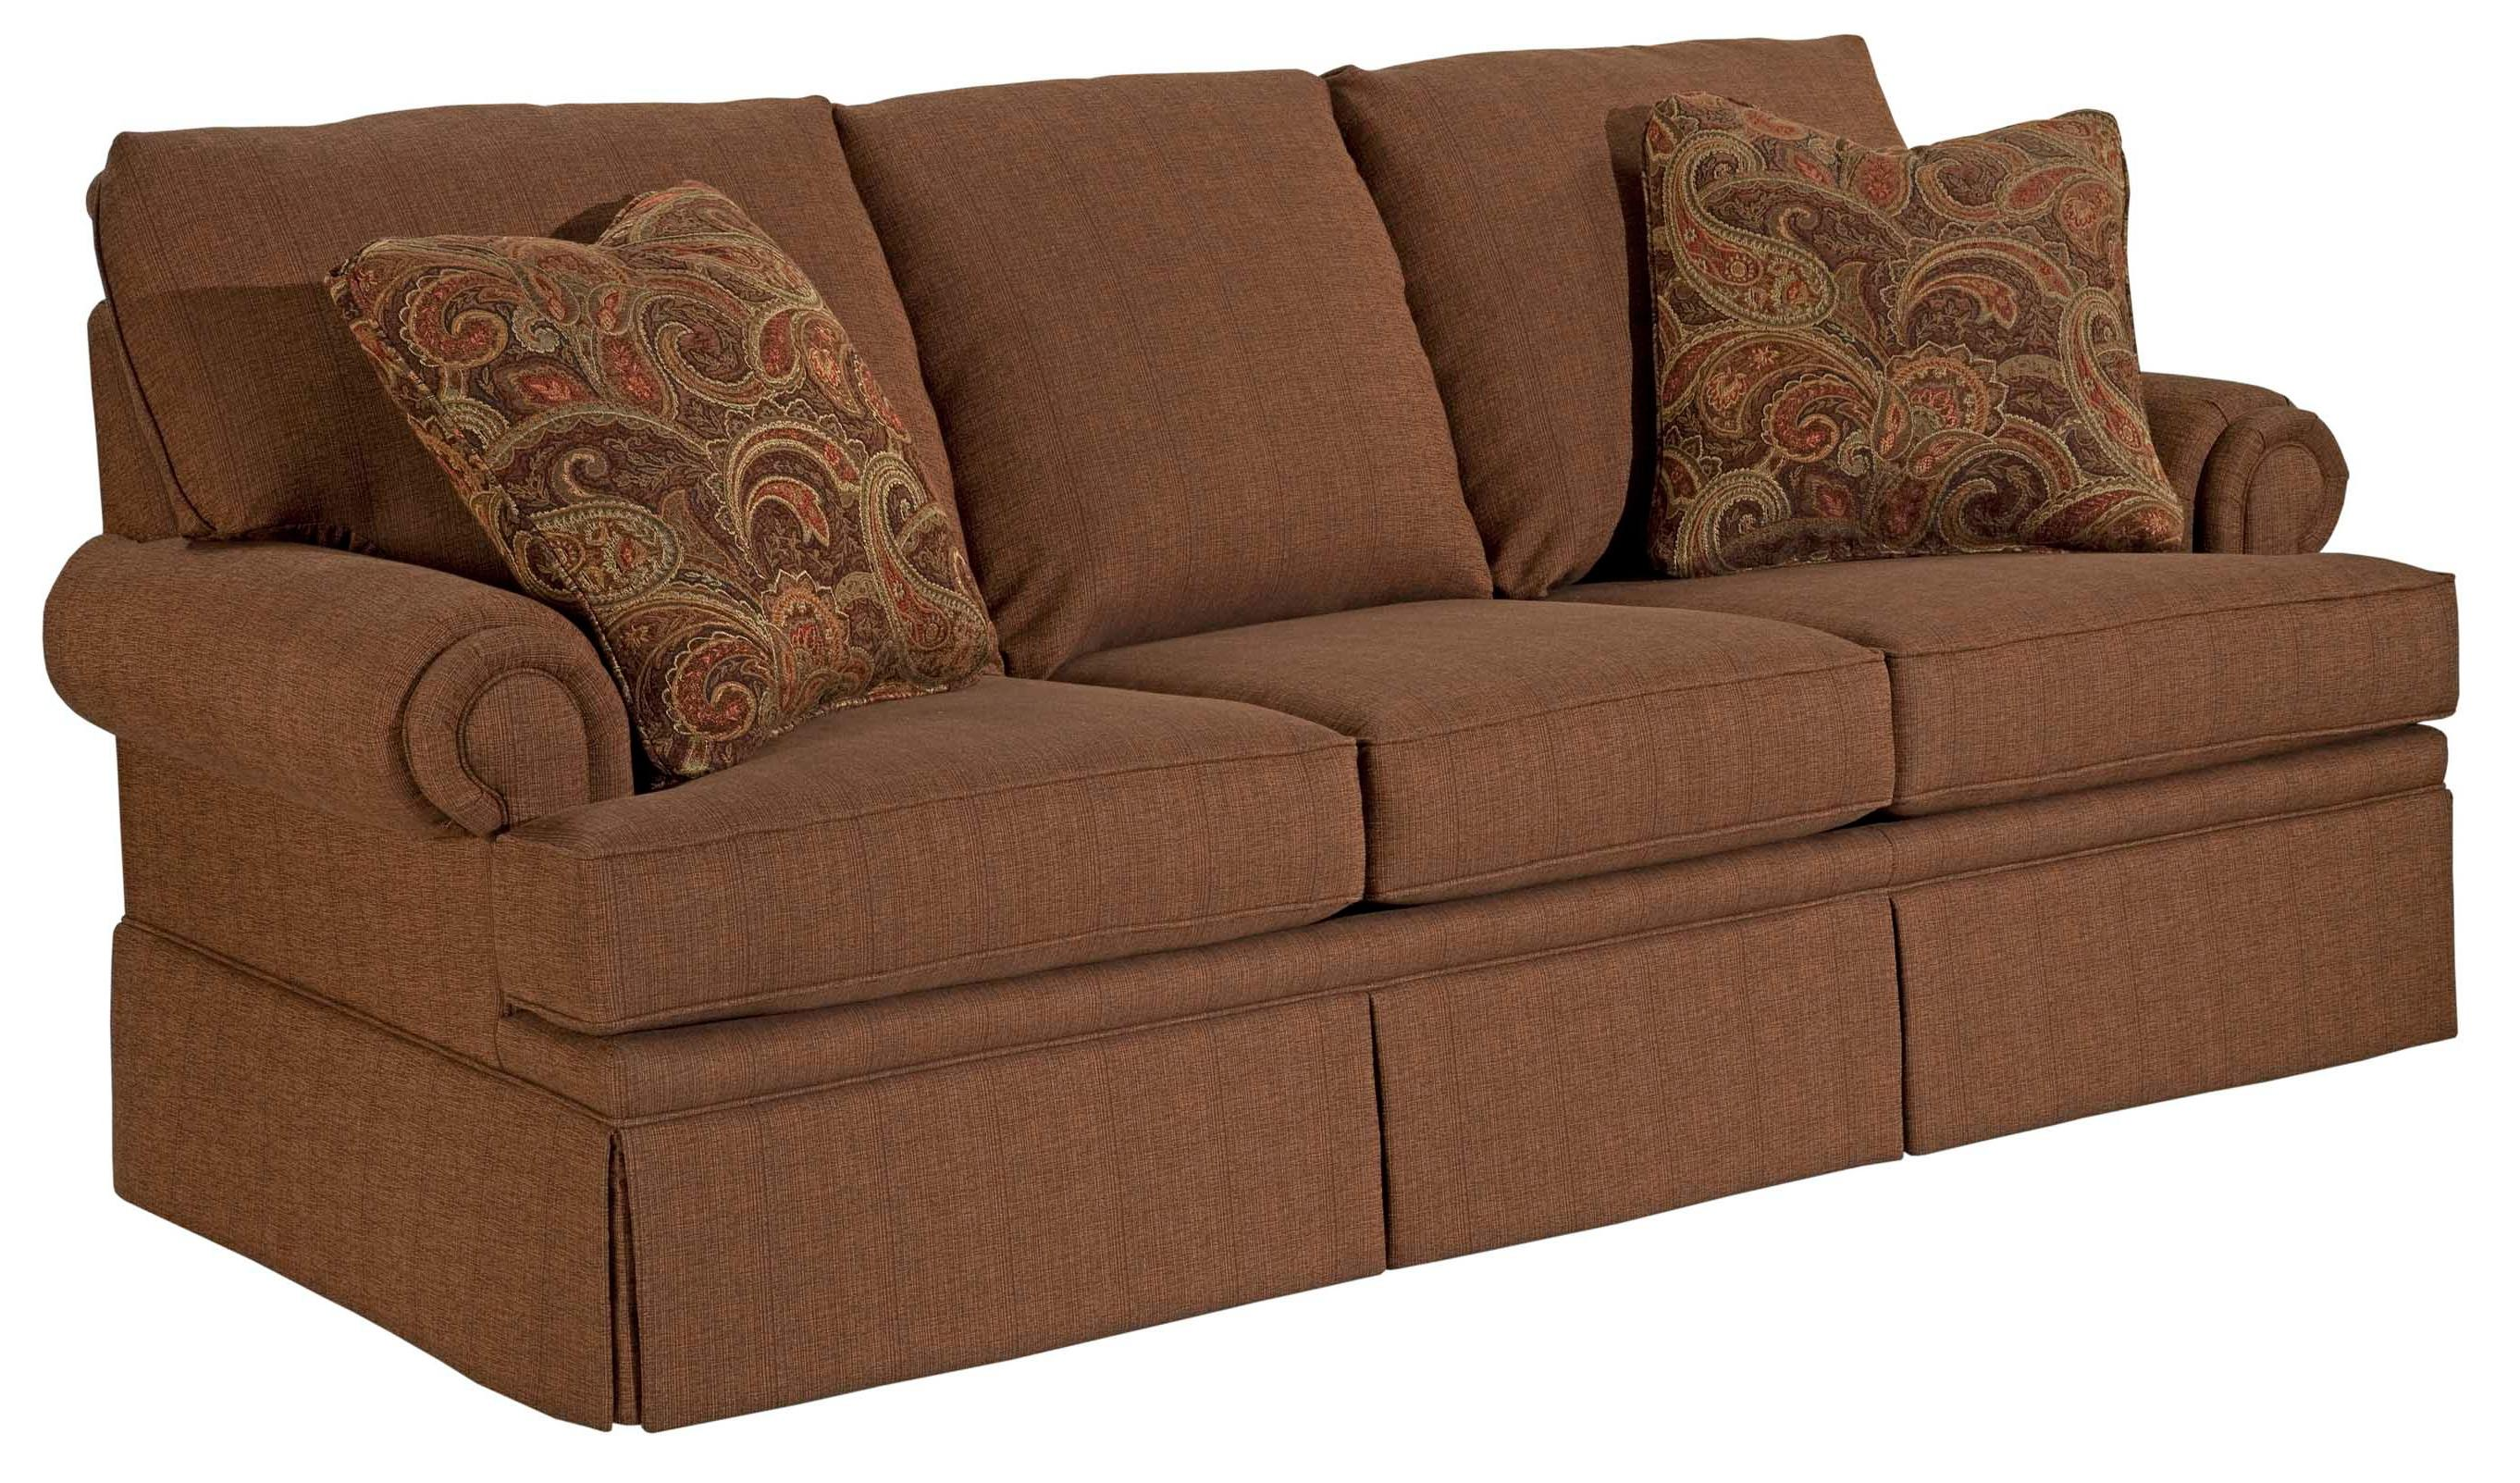 Broyhill Furniture Jenna Queen Air Dream Sofa Sleeper - Item Number: 4342-7A